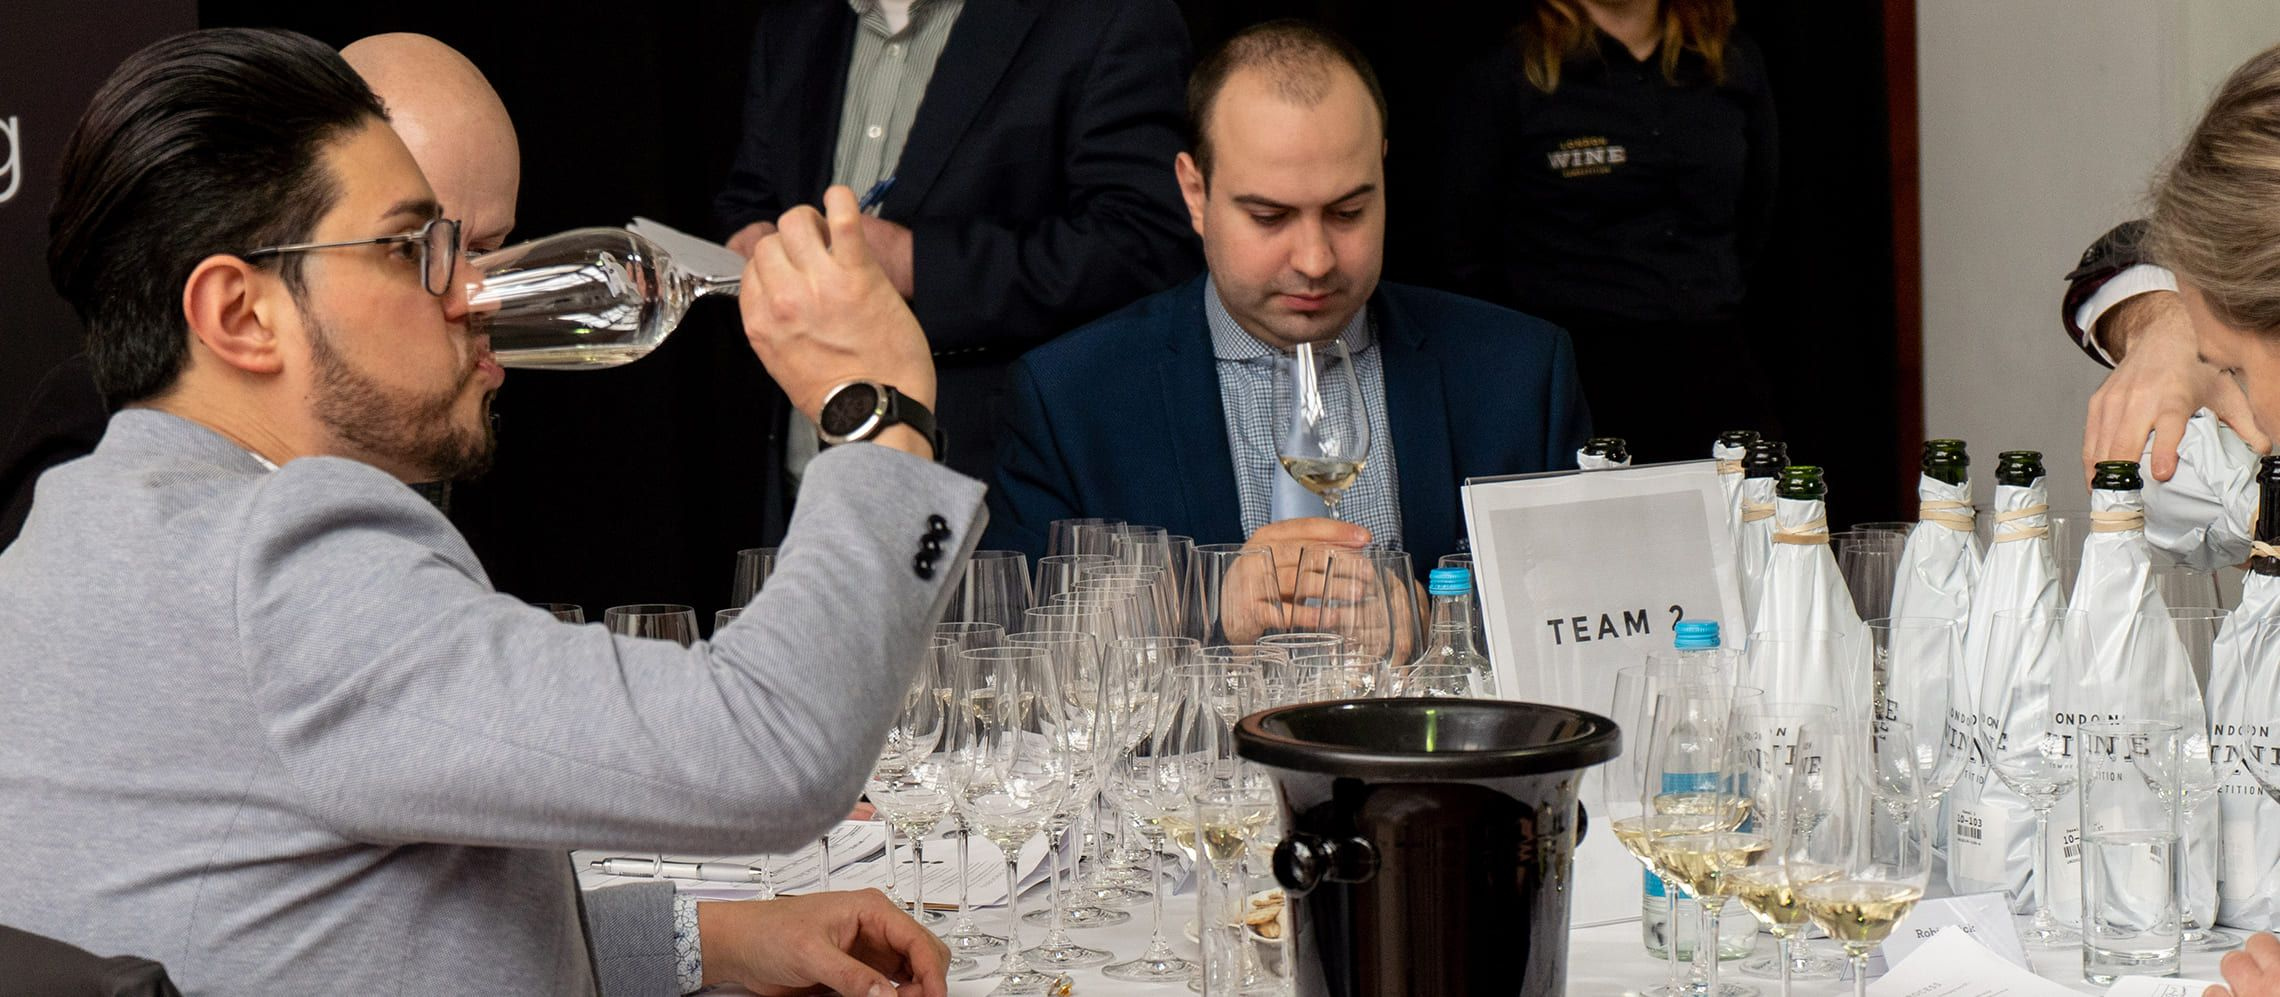 Photo for: Last Few Days To Enter Your Wines in the 2020 London Wine Competition